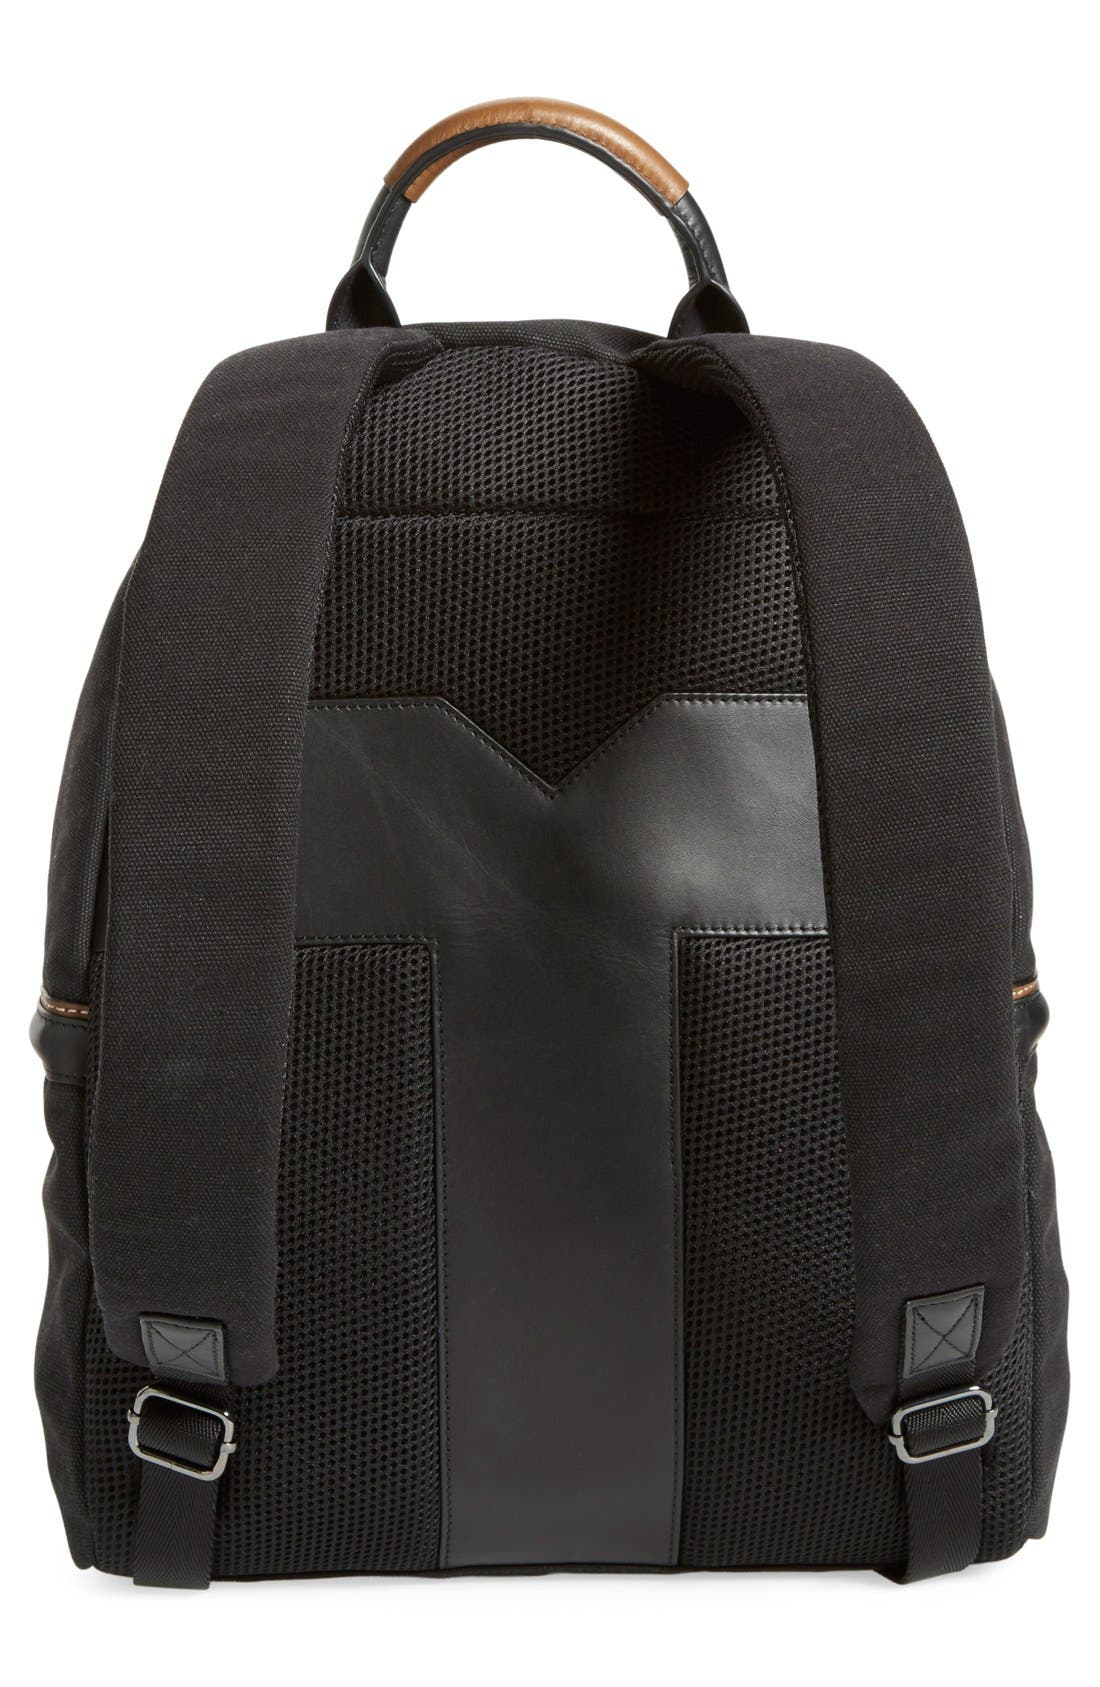 'Brandor' Backpack,                             Alternate thumbnail 5, color,                             001